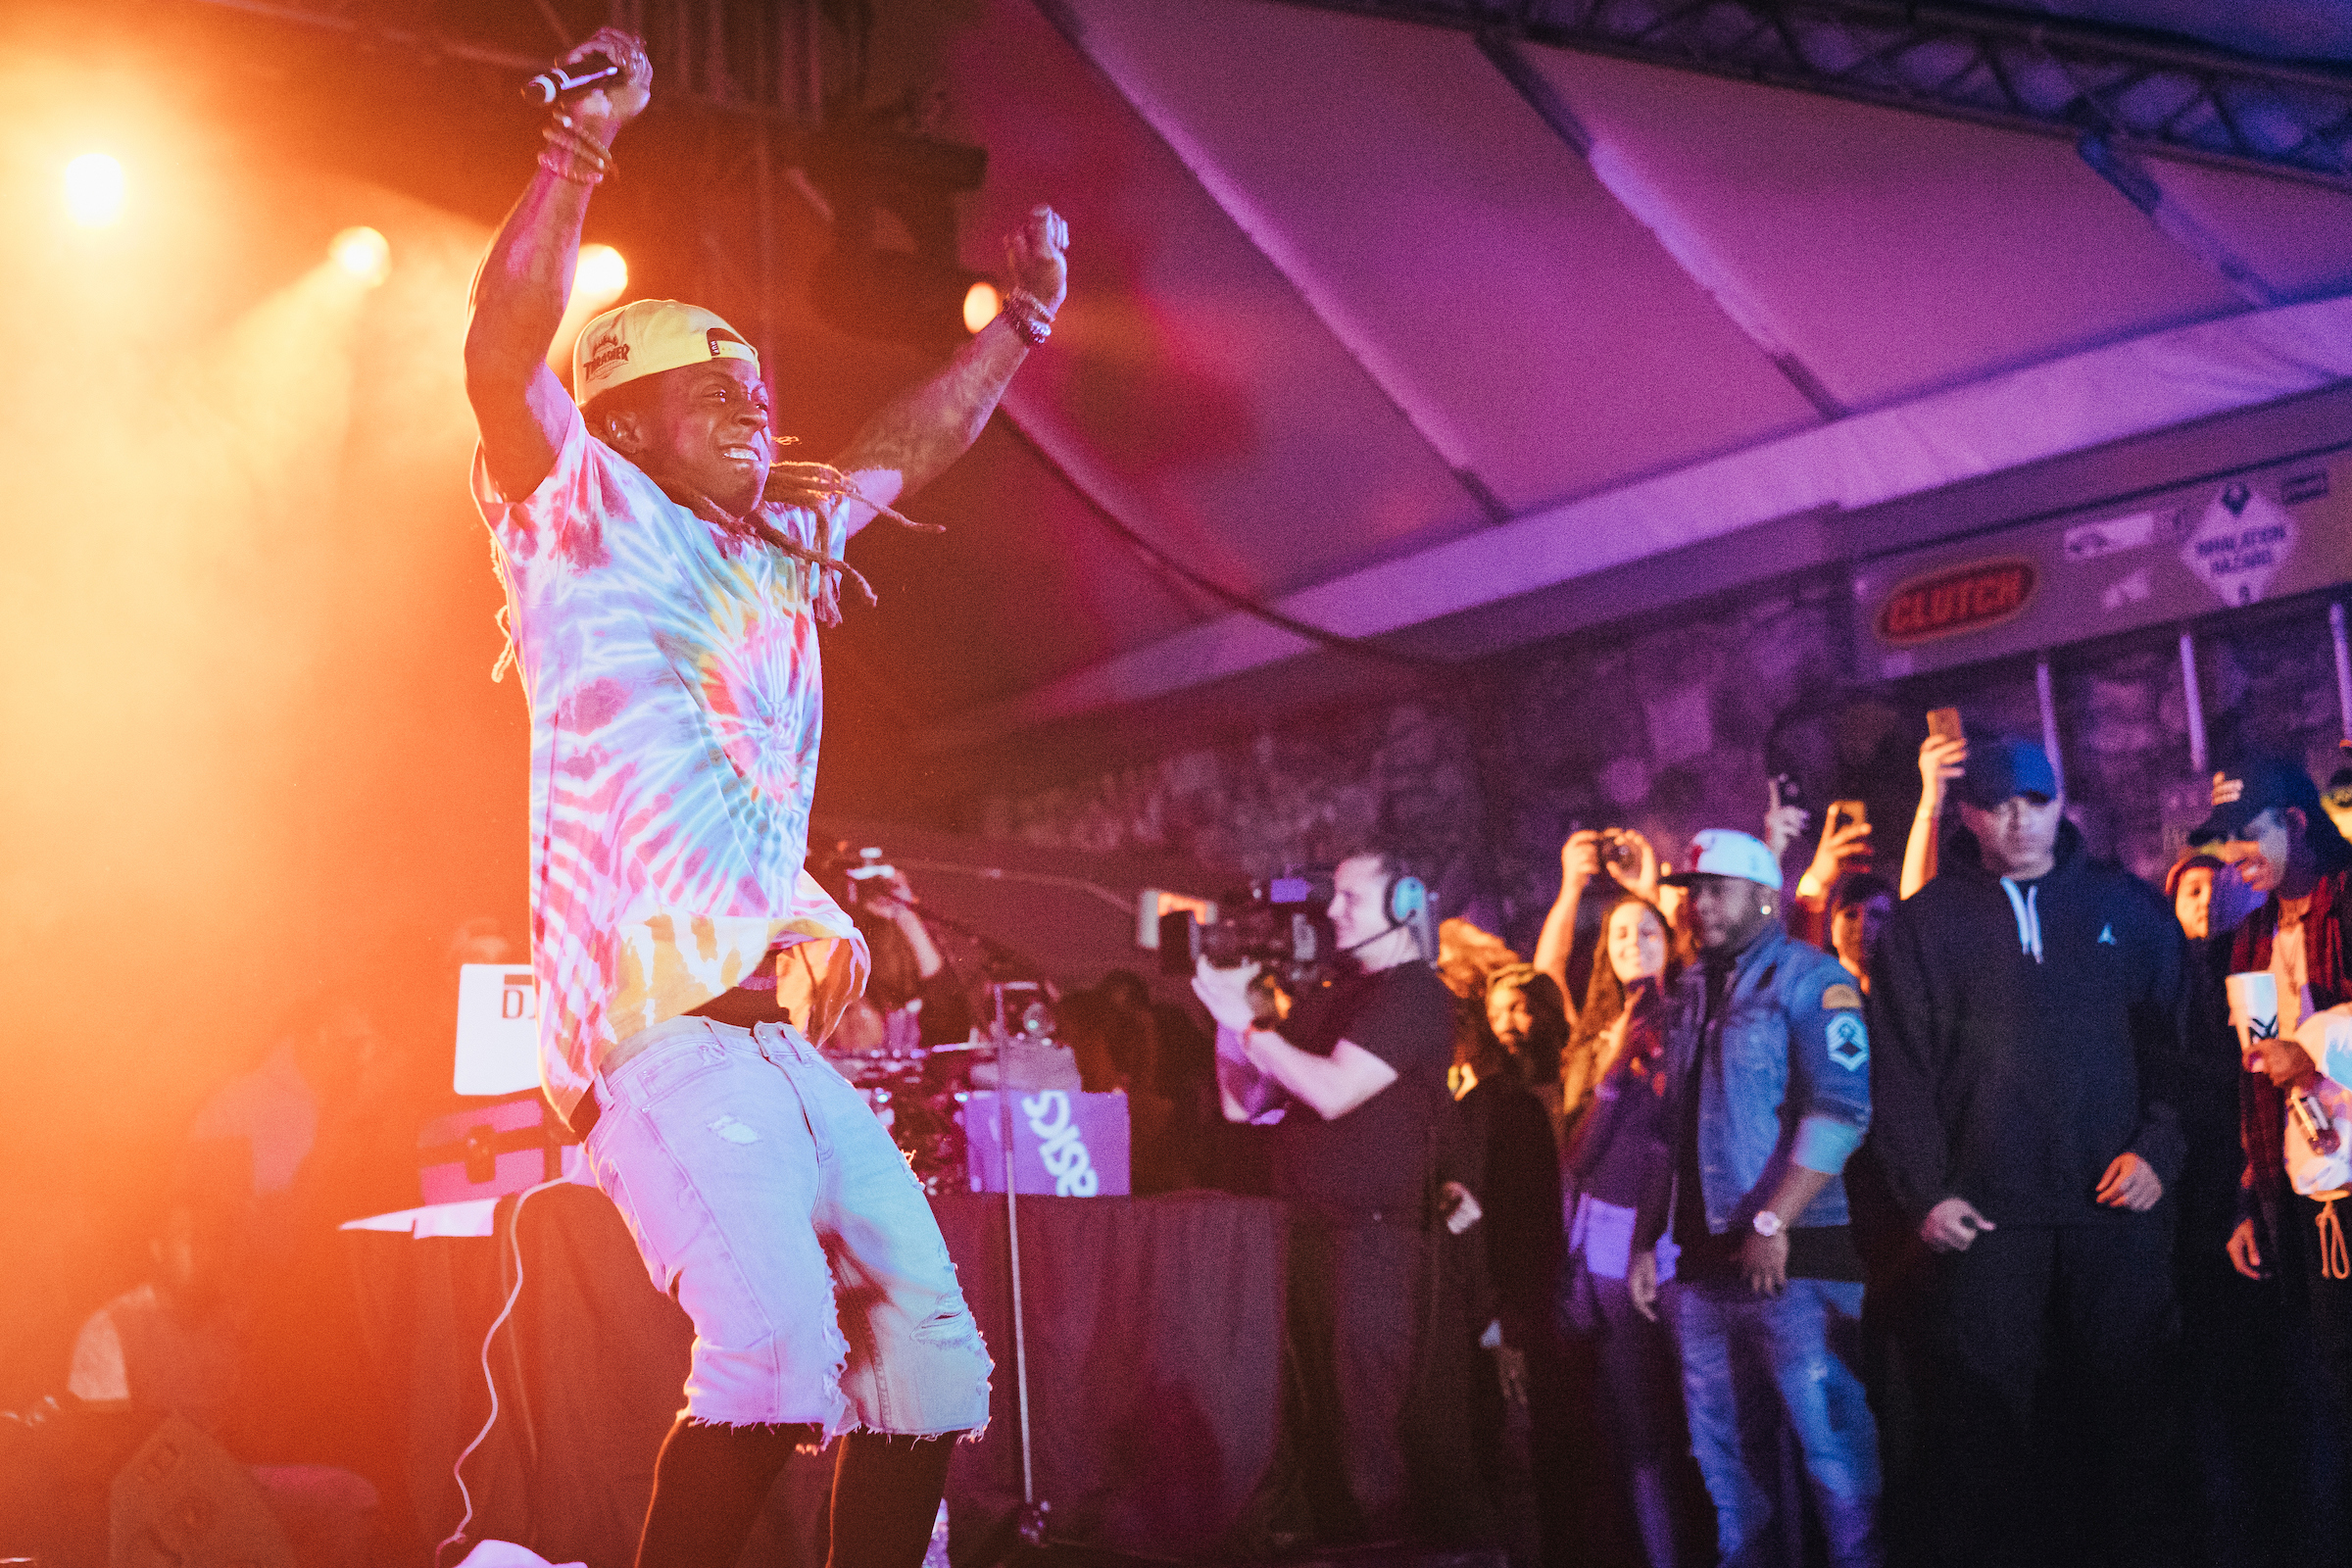 SXSW Recap: Live at the BBQ with Lil Wayne, 9th Wonder, Rapsody, Dave East and More [Watch Now]